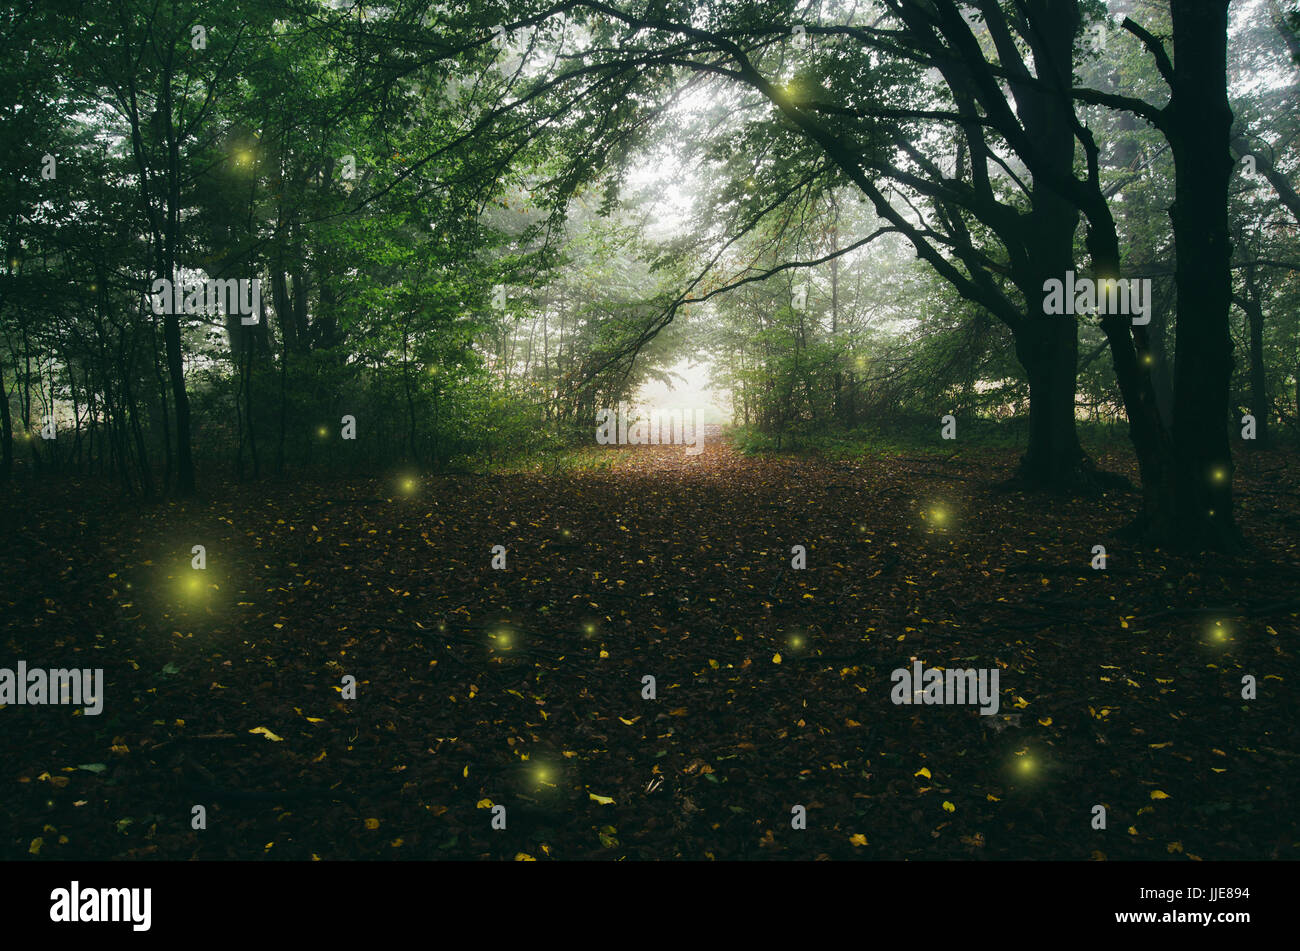 magical forest path with surreal sparkles fantasy landscape - Stock Image